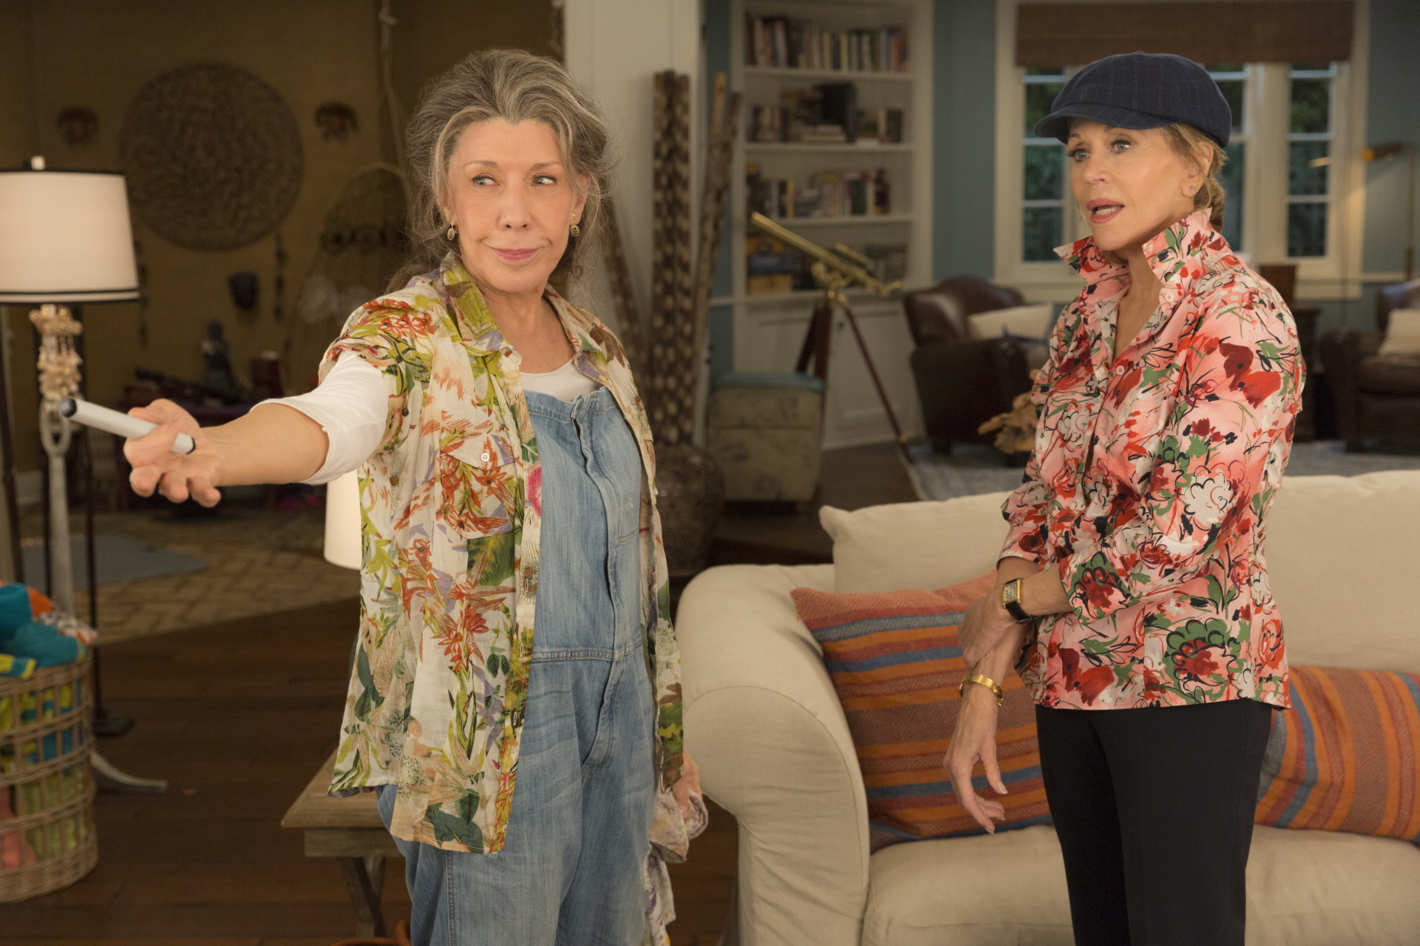 Let's go inside the Netflix hit Grace and Frankie to score beach house decor & paint ideas! #graceandfrankie #getthelook